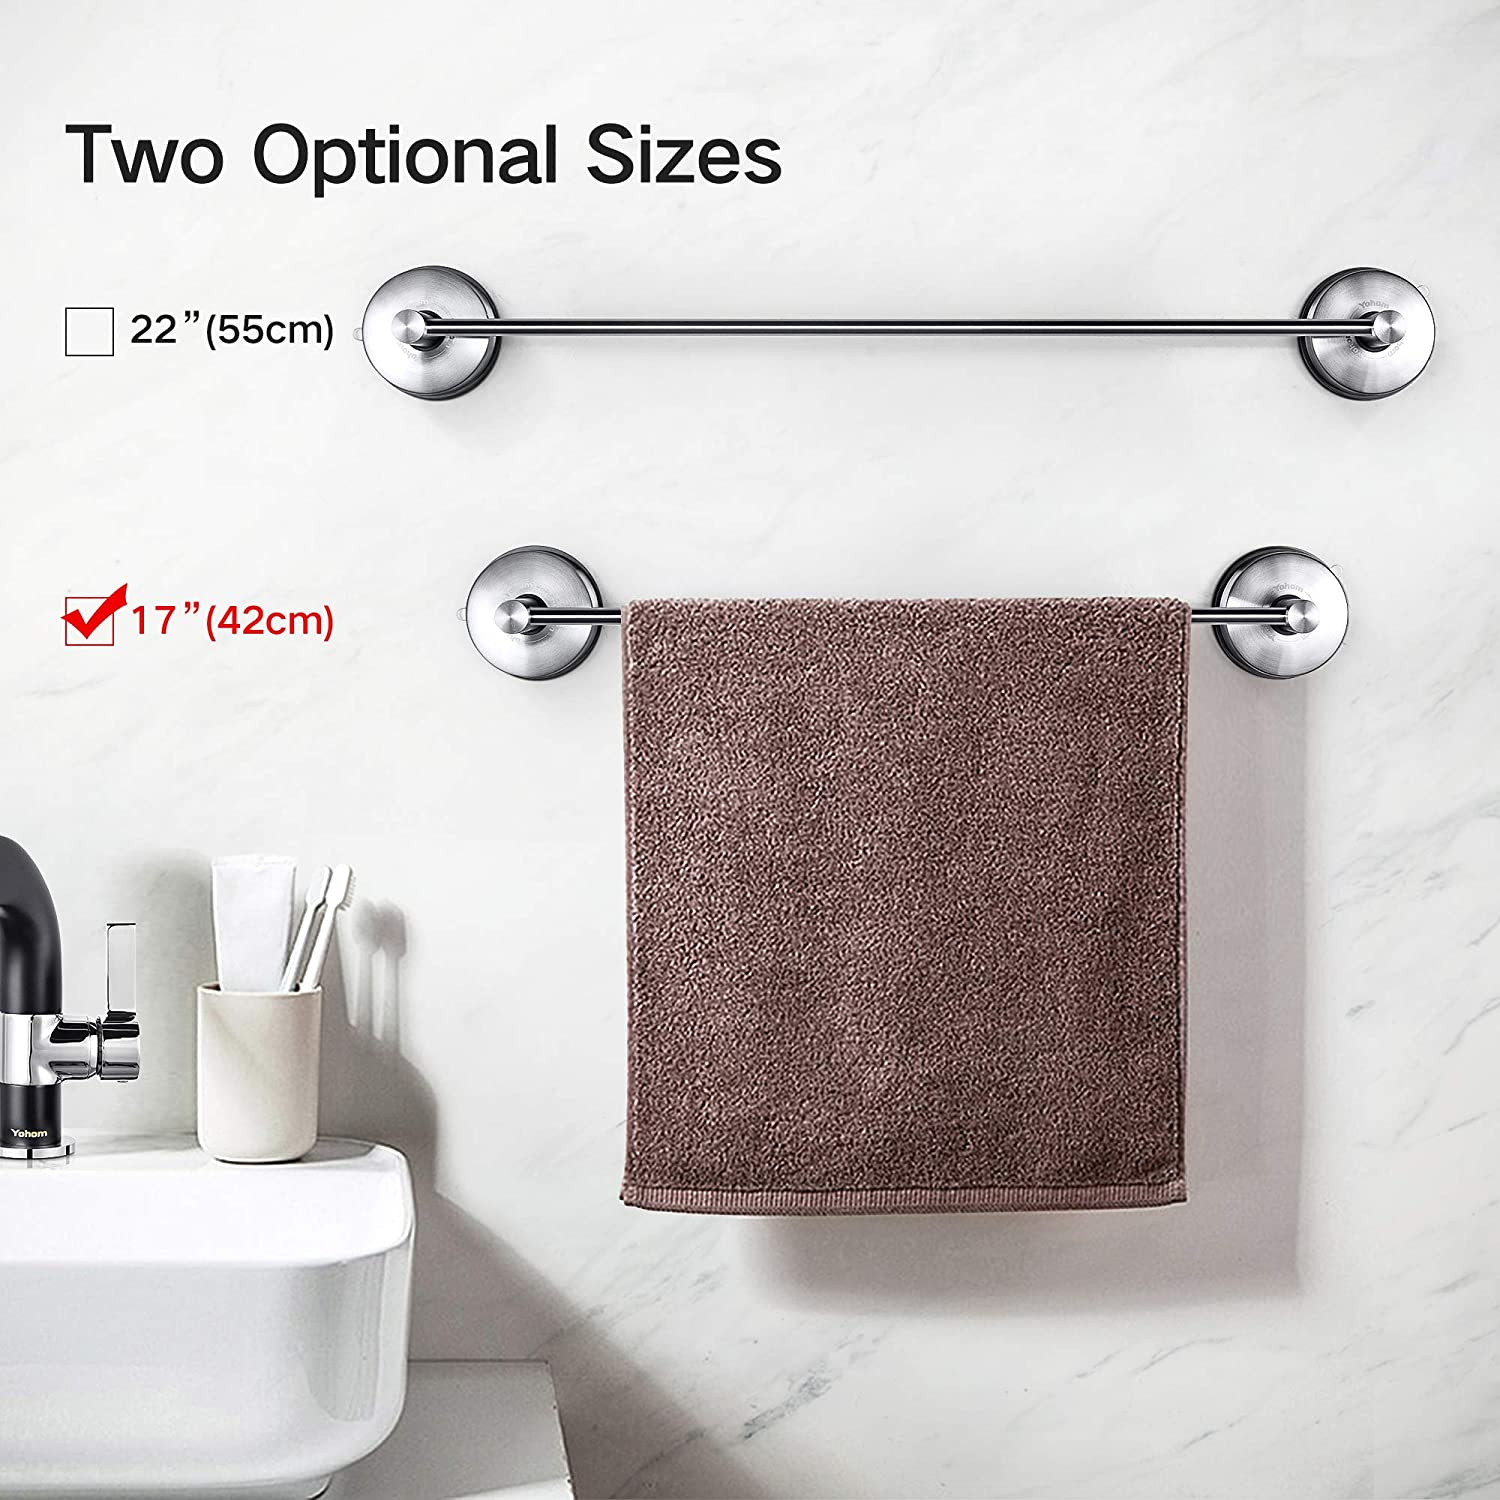 42.8cm YOHOM Stainless Steel Vacuum Suction Cup 17-Inch Single Towel Rail Bar Towel Rack Holder Wall Mounted Hanger Hook Accessory for Bathroom Kitchen Lavatory,No Tool Brushed Finish